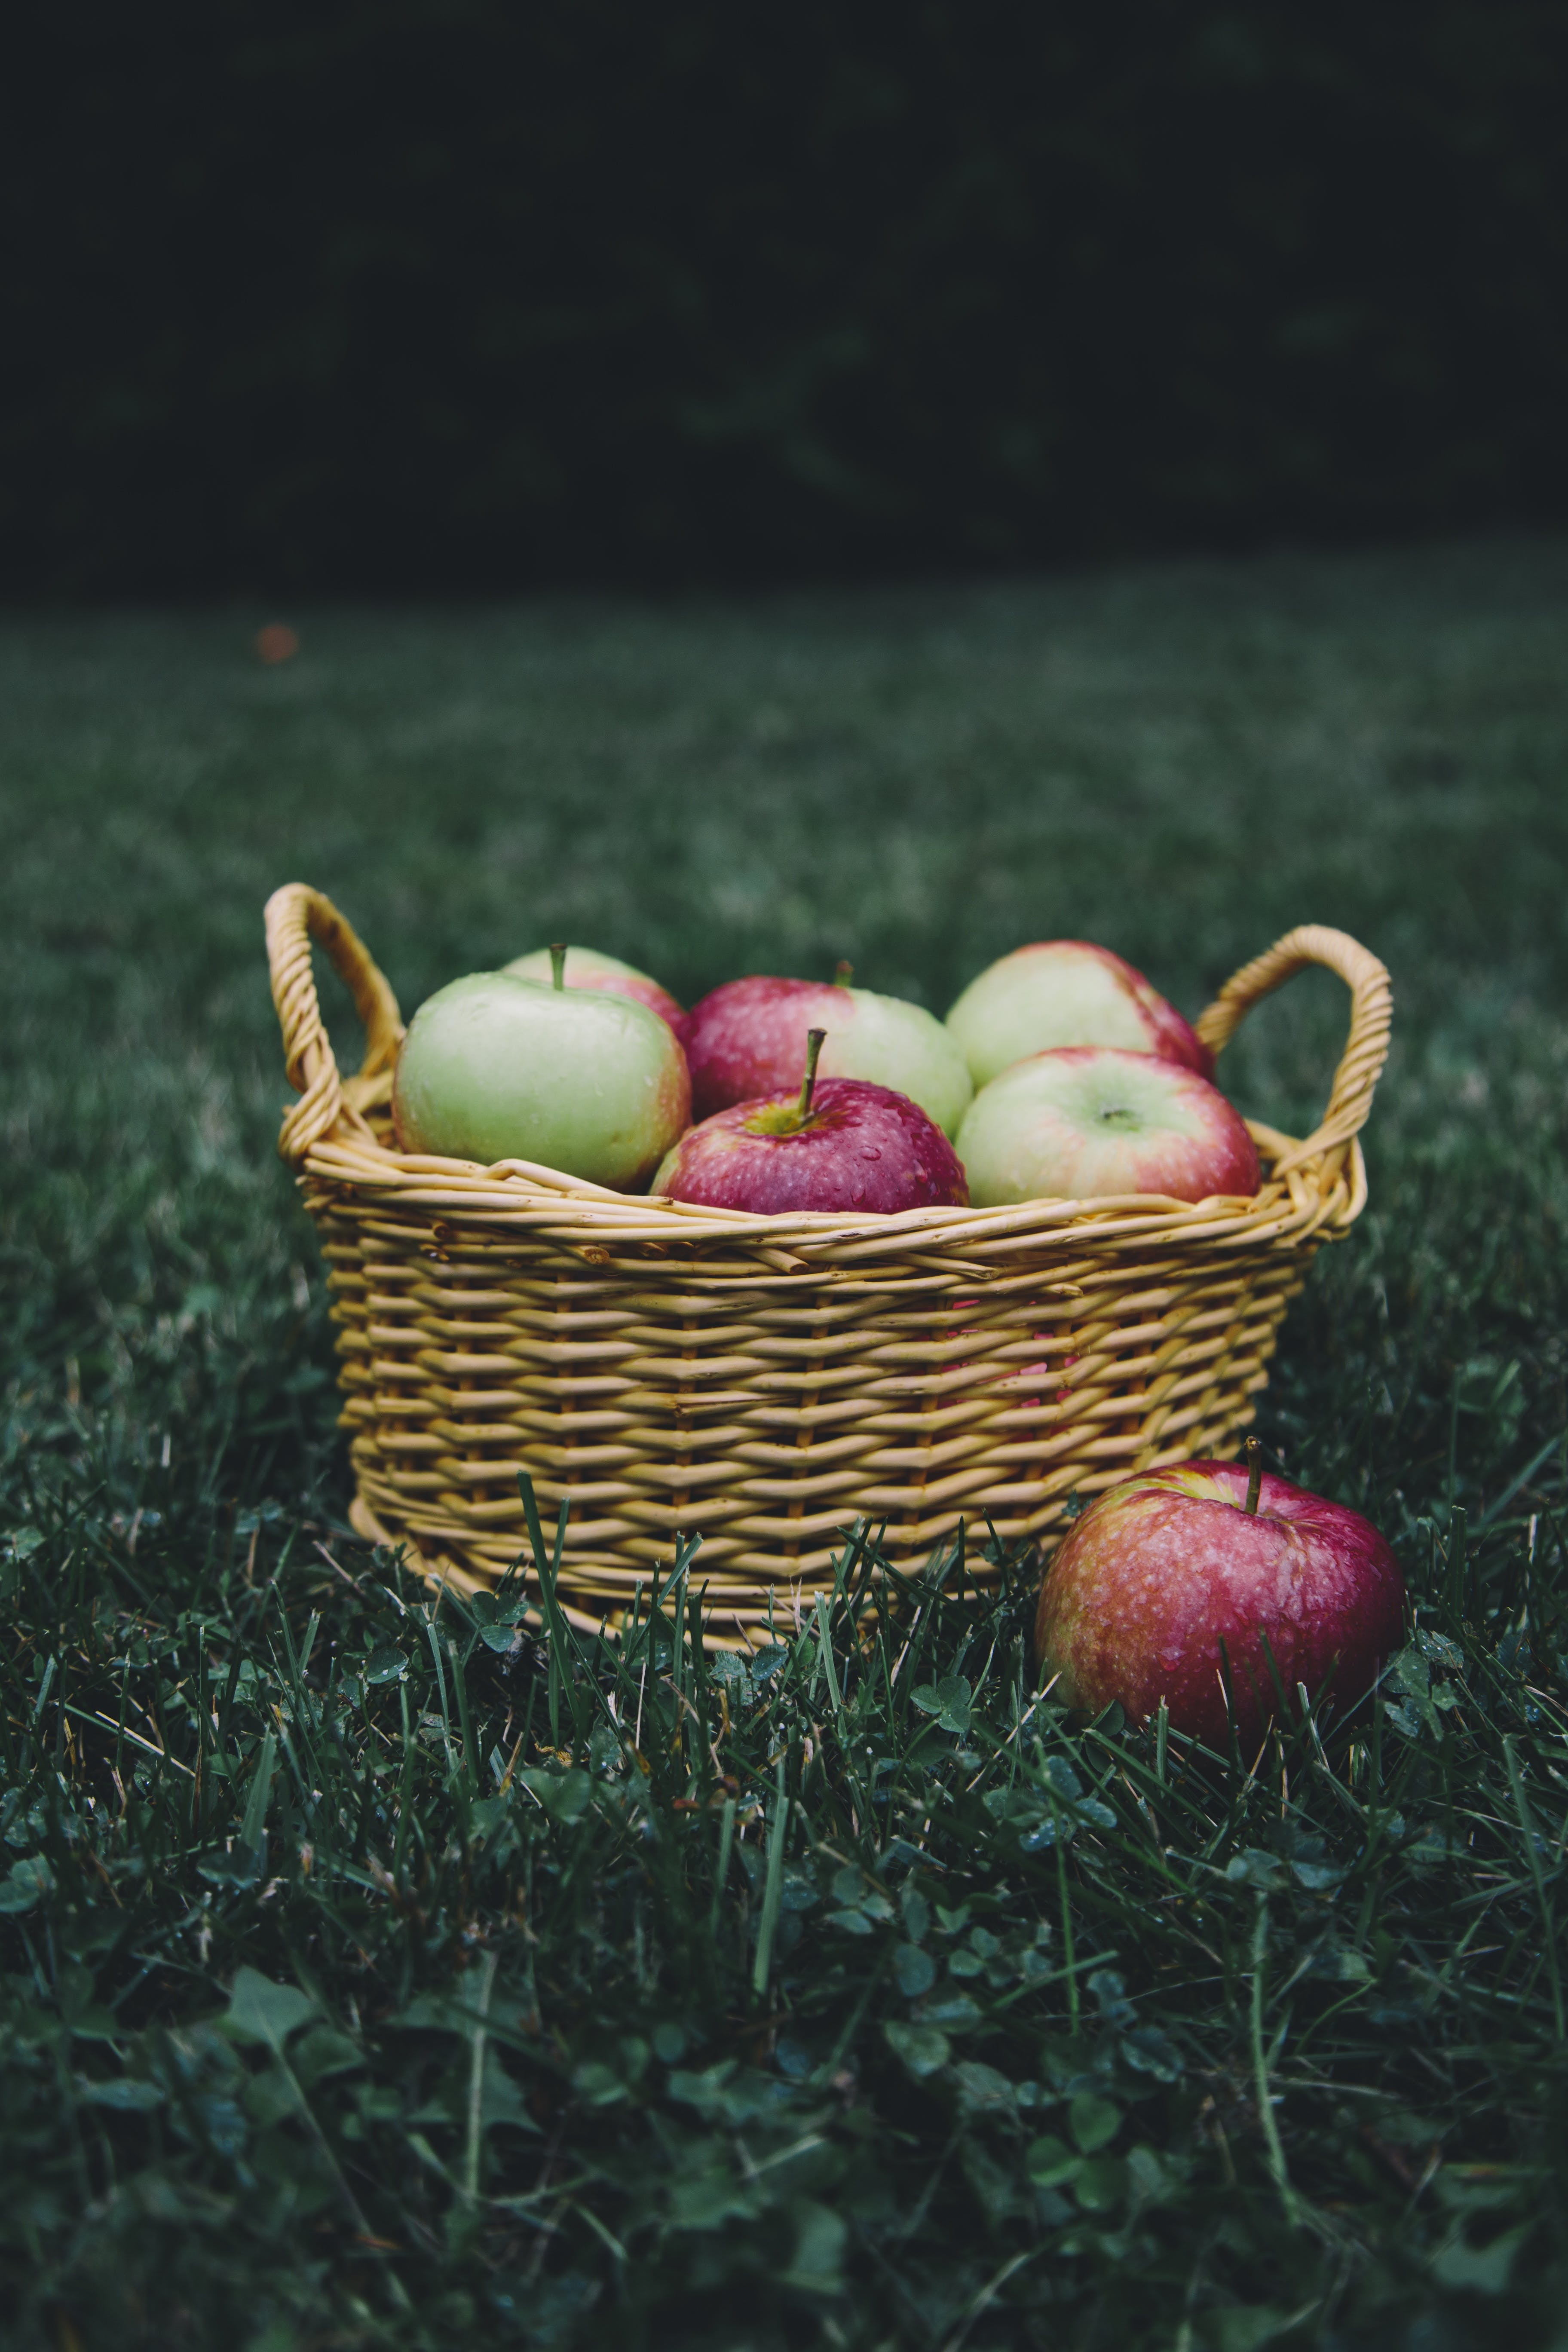 Free stock photo of healthy, grass, blur, apples